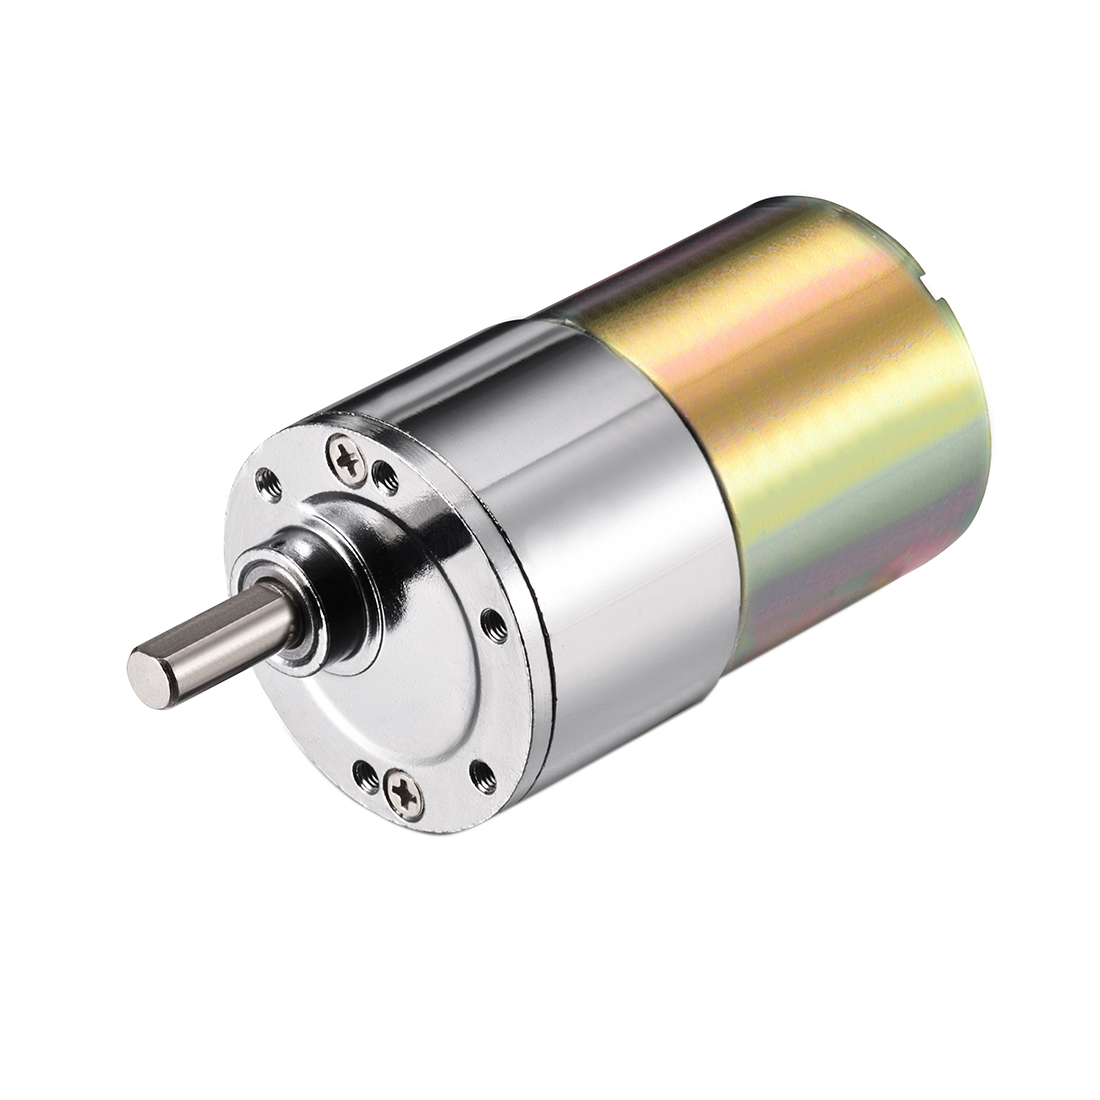 DC 24V 200RPM Micro Gear Box Motor Speed Reduction Electric Gearbox Eccentric Output Shaft